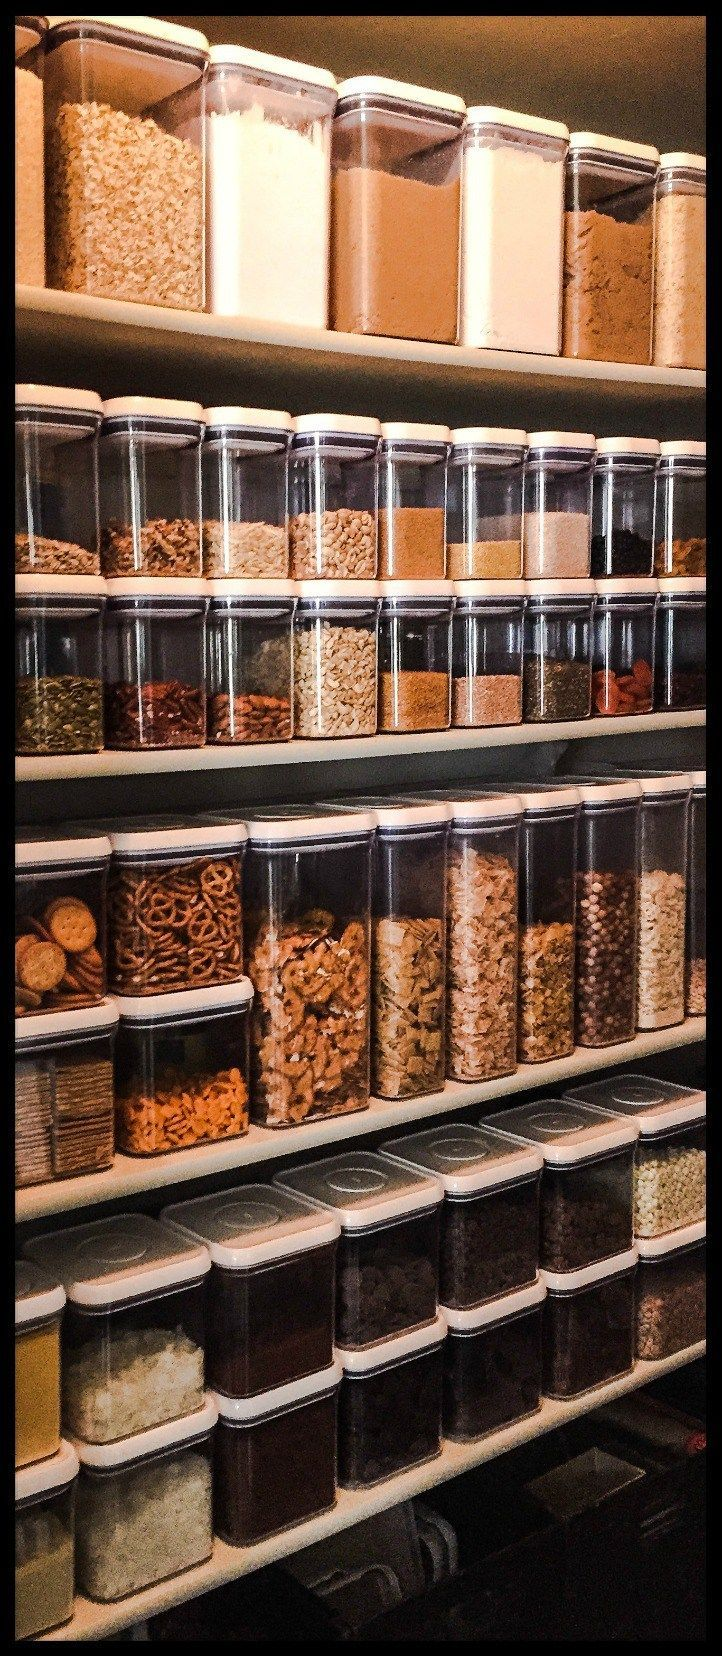 Best 25 kitchen containers ideas on pinterest pantry for Organization ideas for kitchen pantry